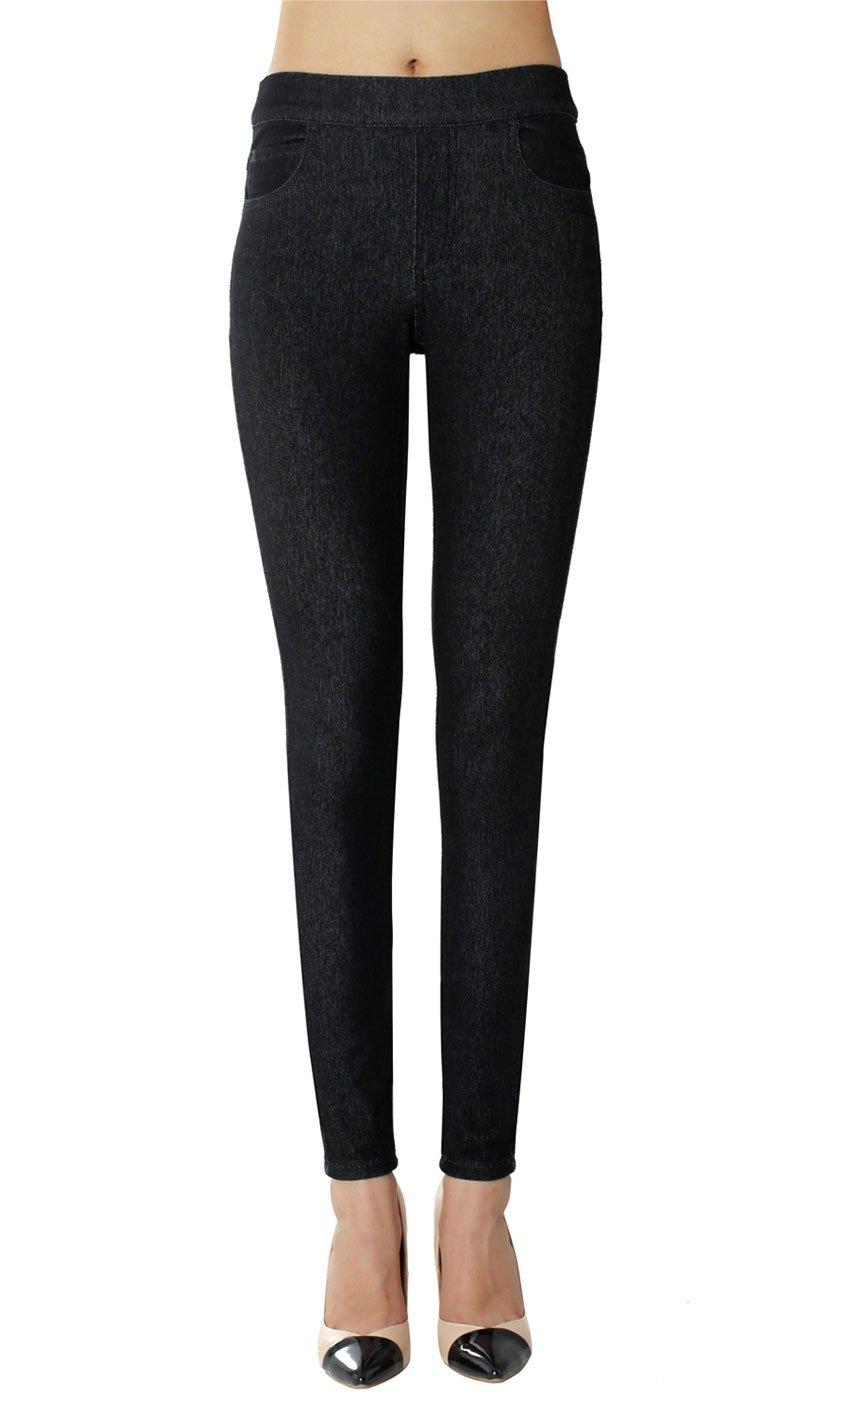 862b32c24f8 Top 10 wholesale Black Jegging Jeans - Chinabrands.com